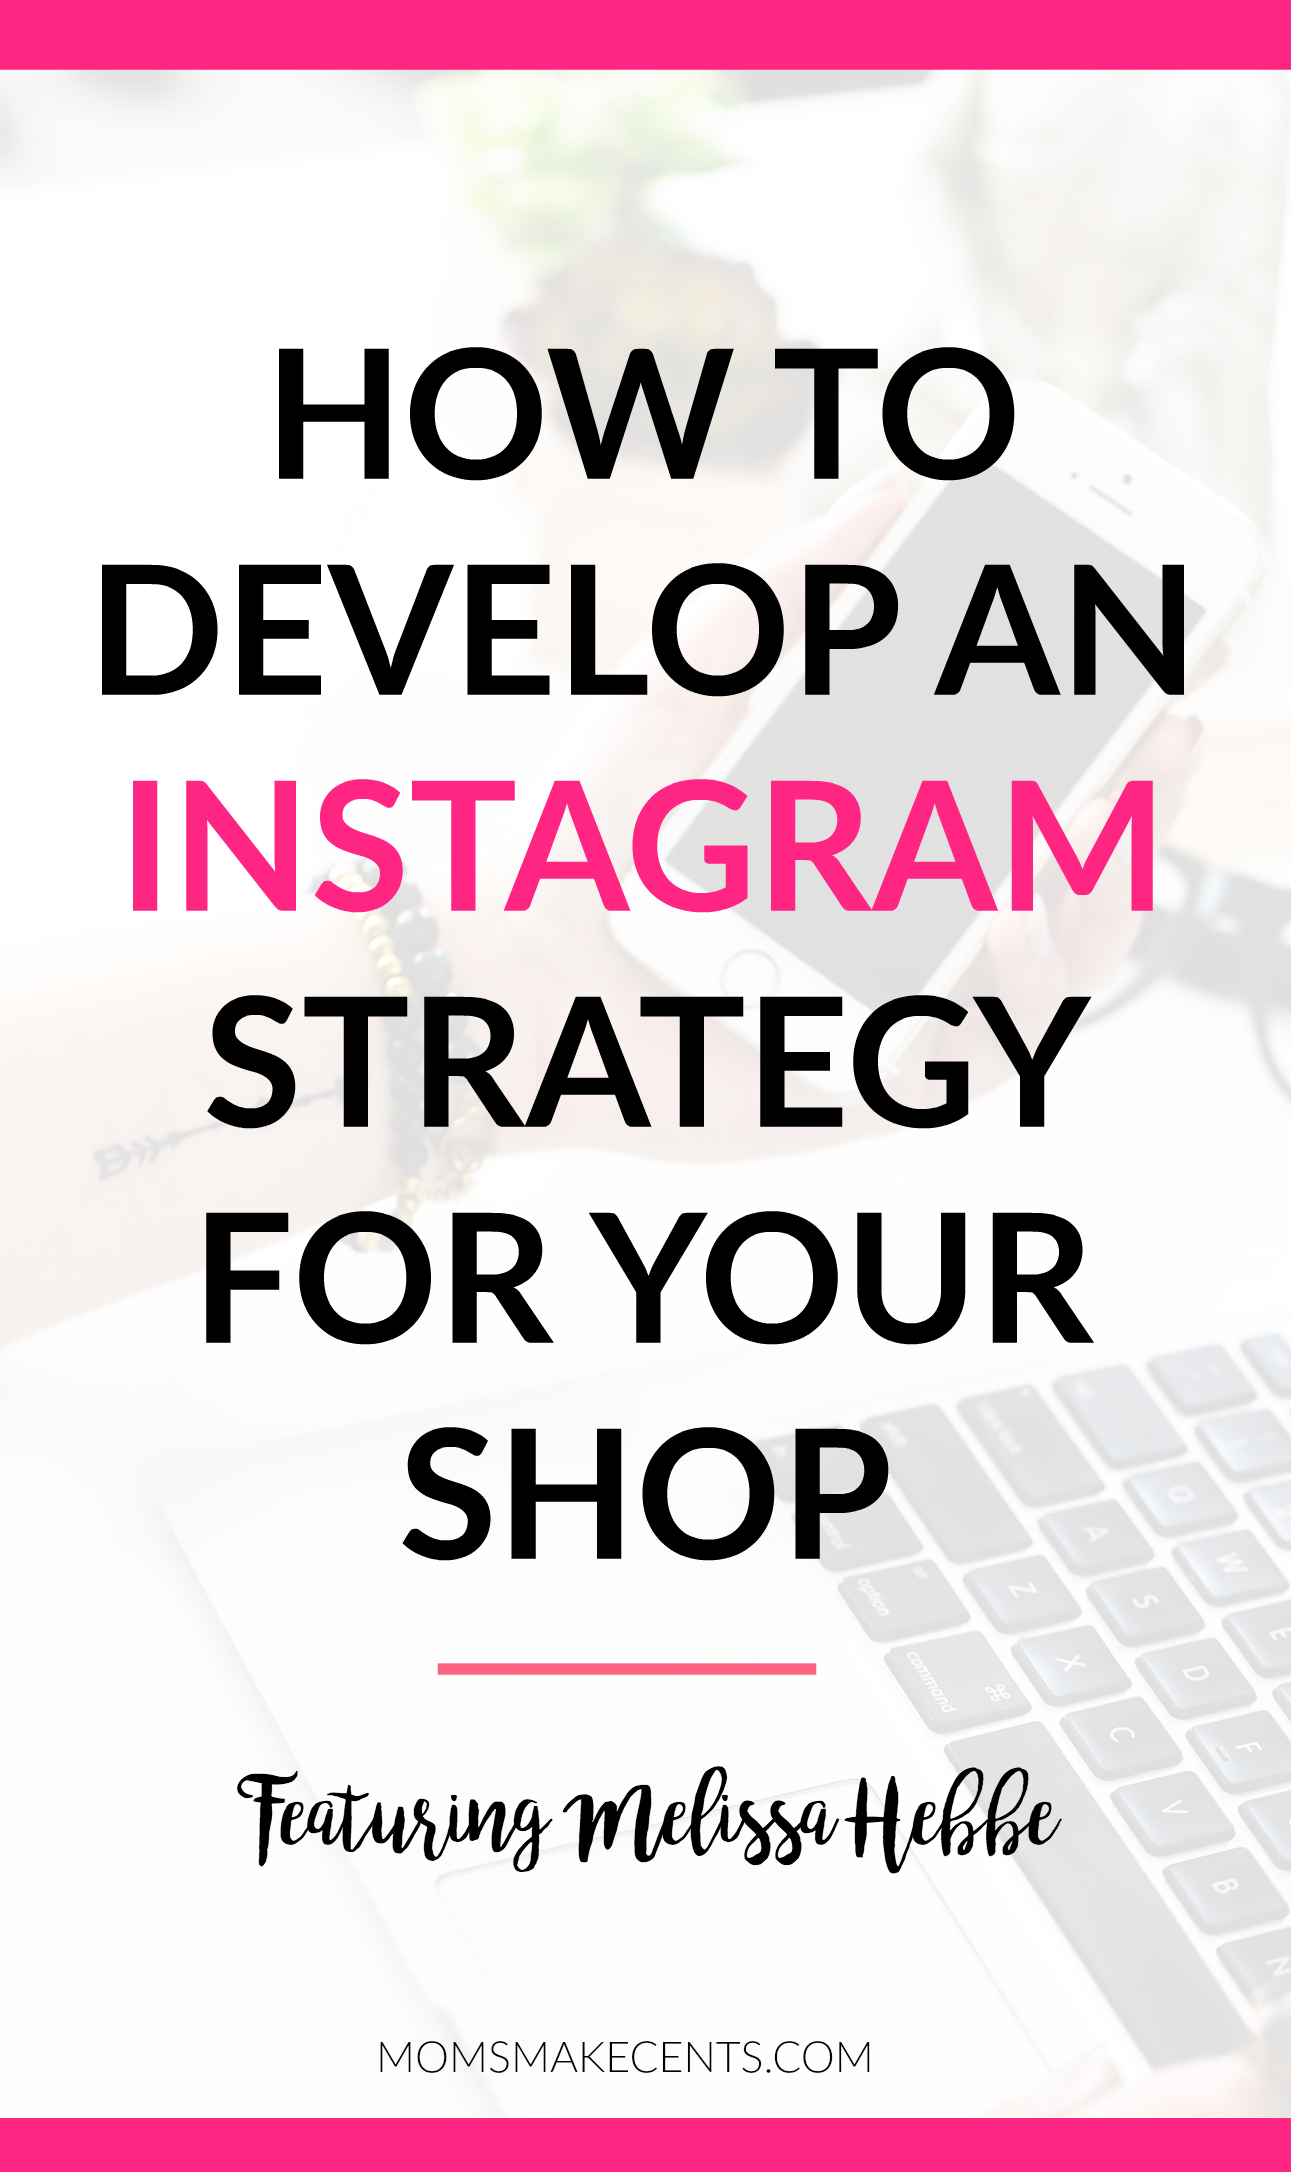 How To Develop An Instagram Strategy For Your Boutique Or Shop